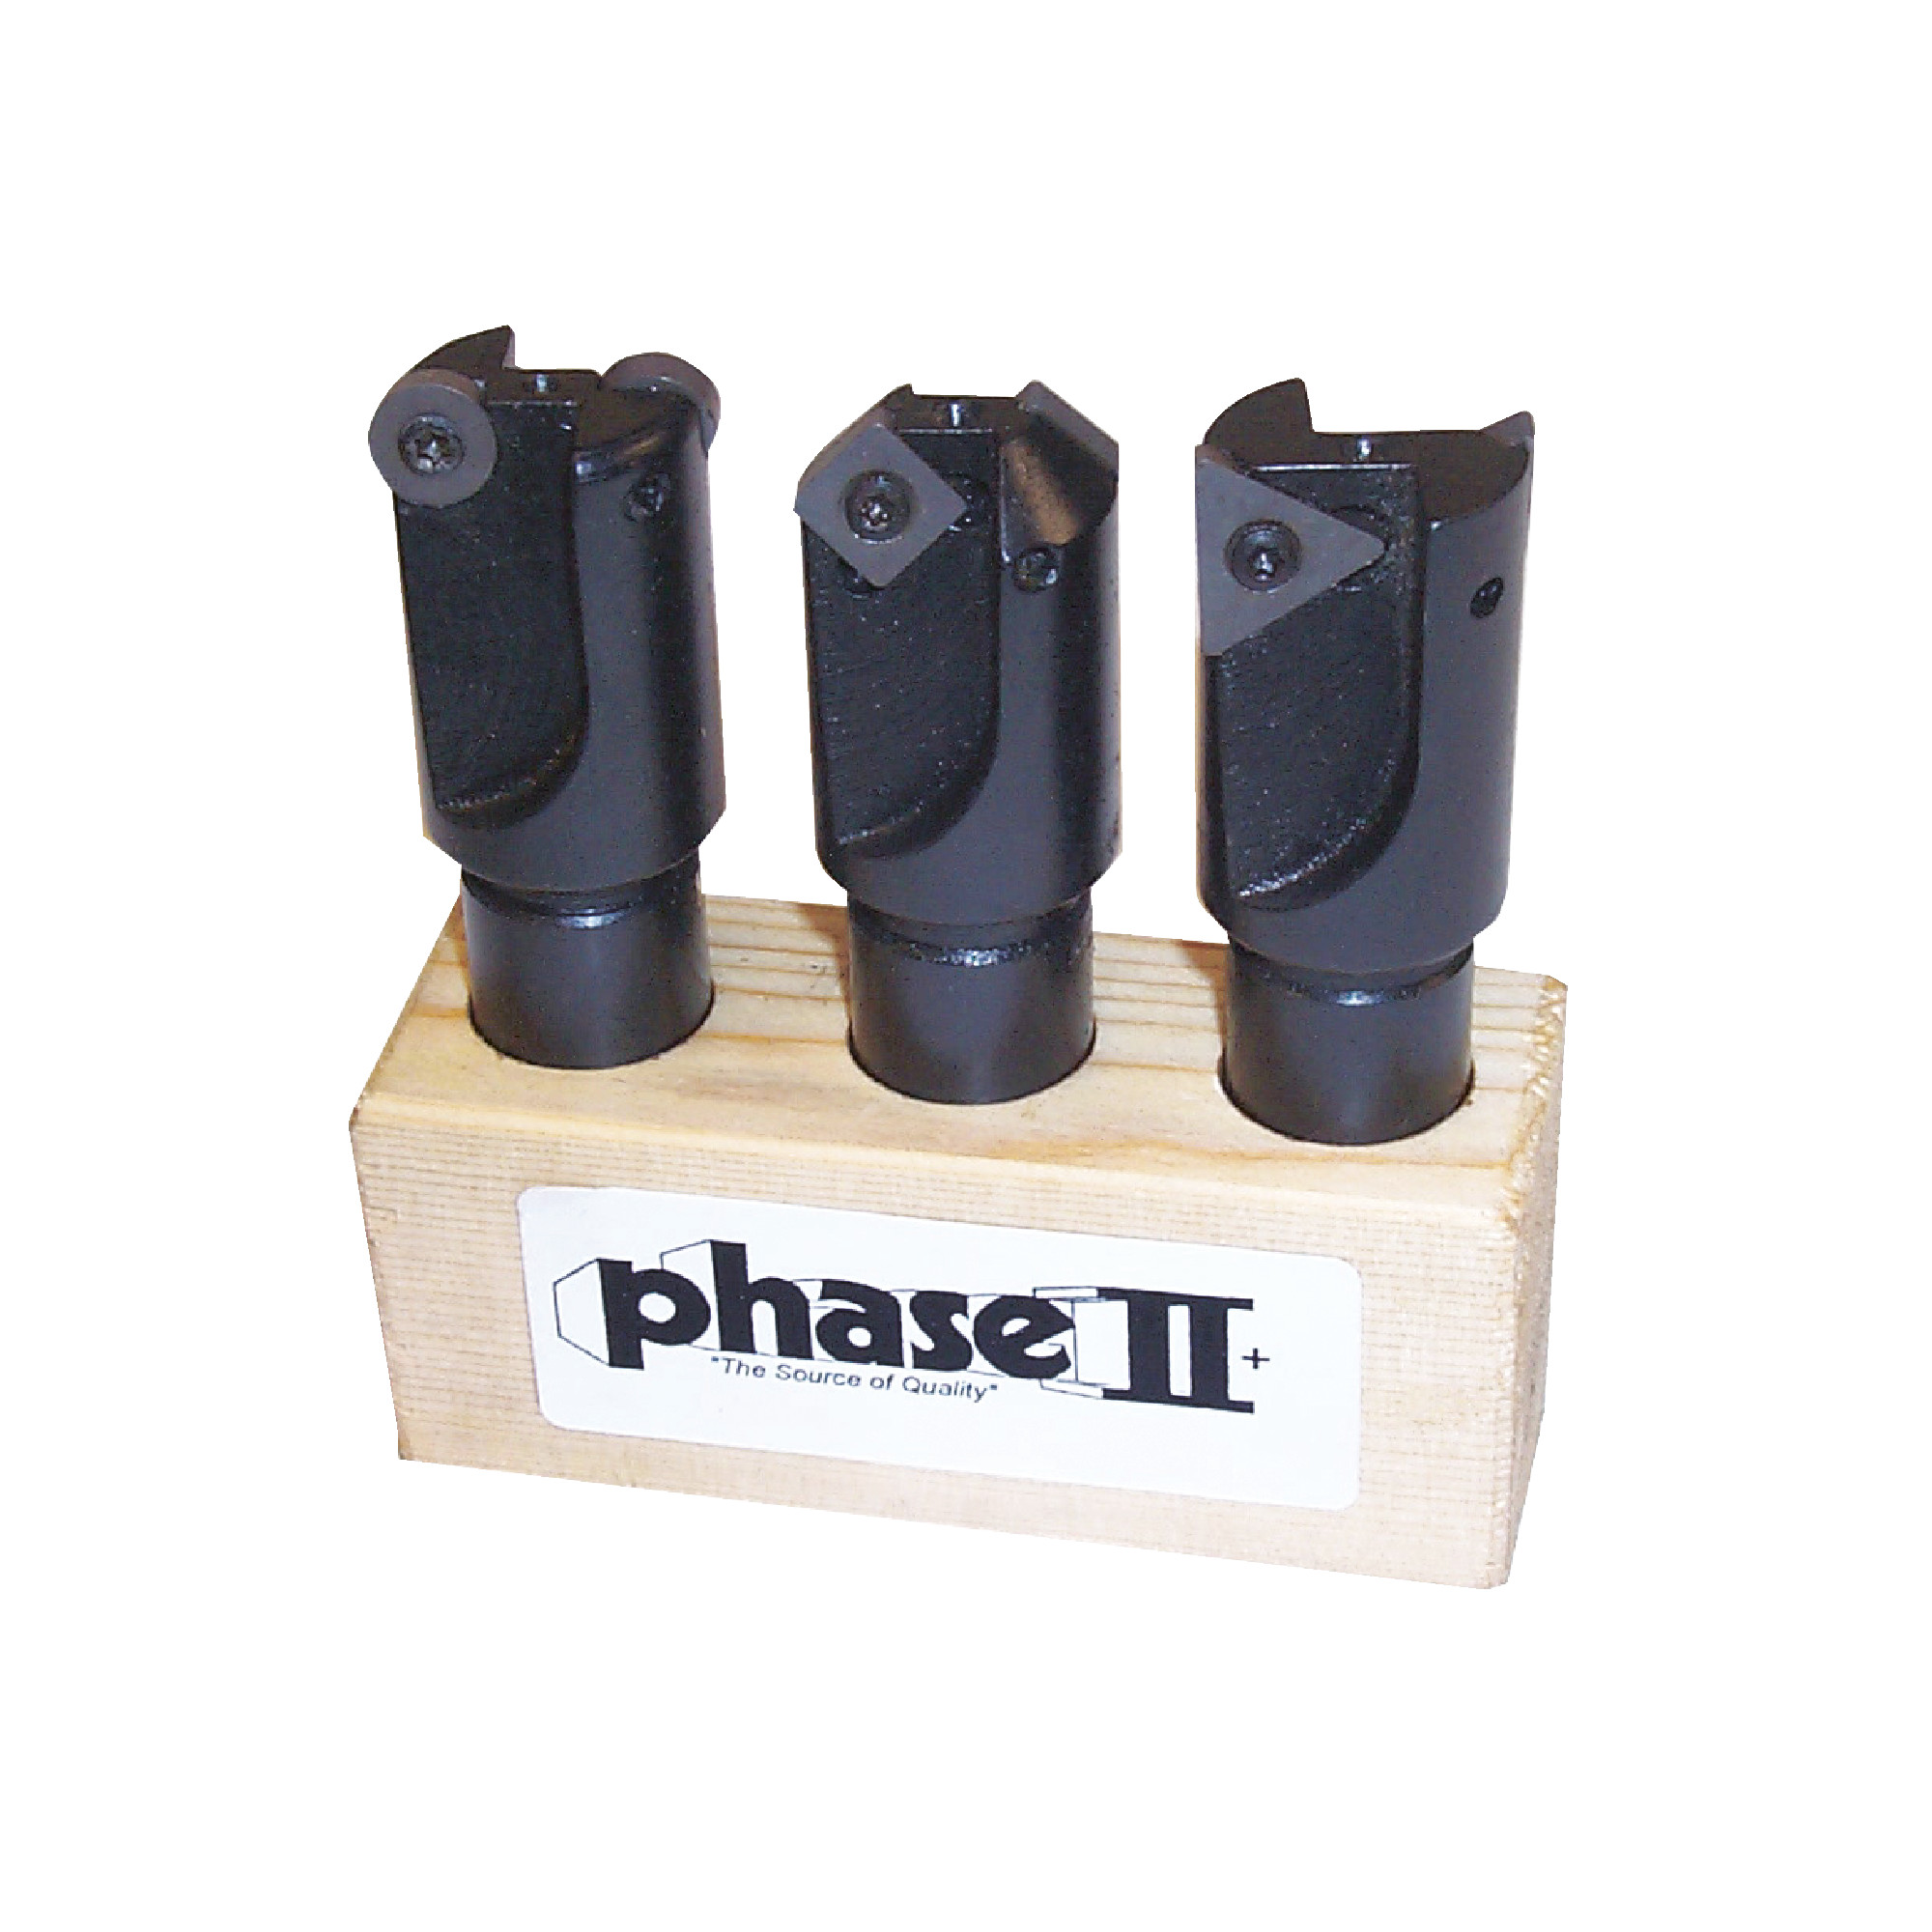 """PHASE II - Milling Set With Inserts / Includes: (1) 45° Endmill (1.0""""ø), (1) 90° Endmill (1.0""""ø)"""